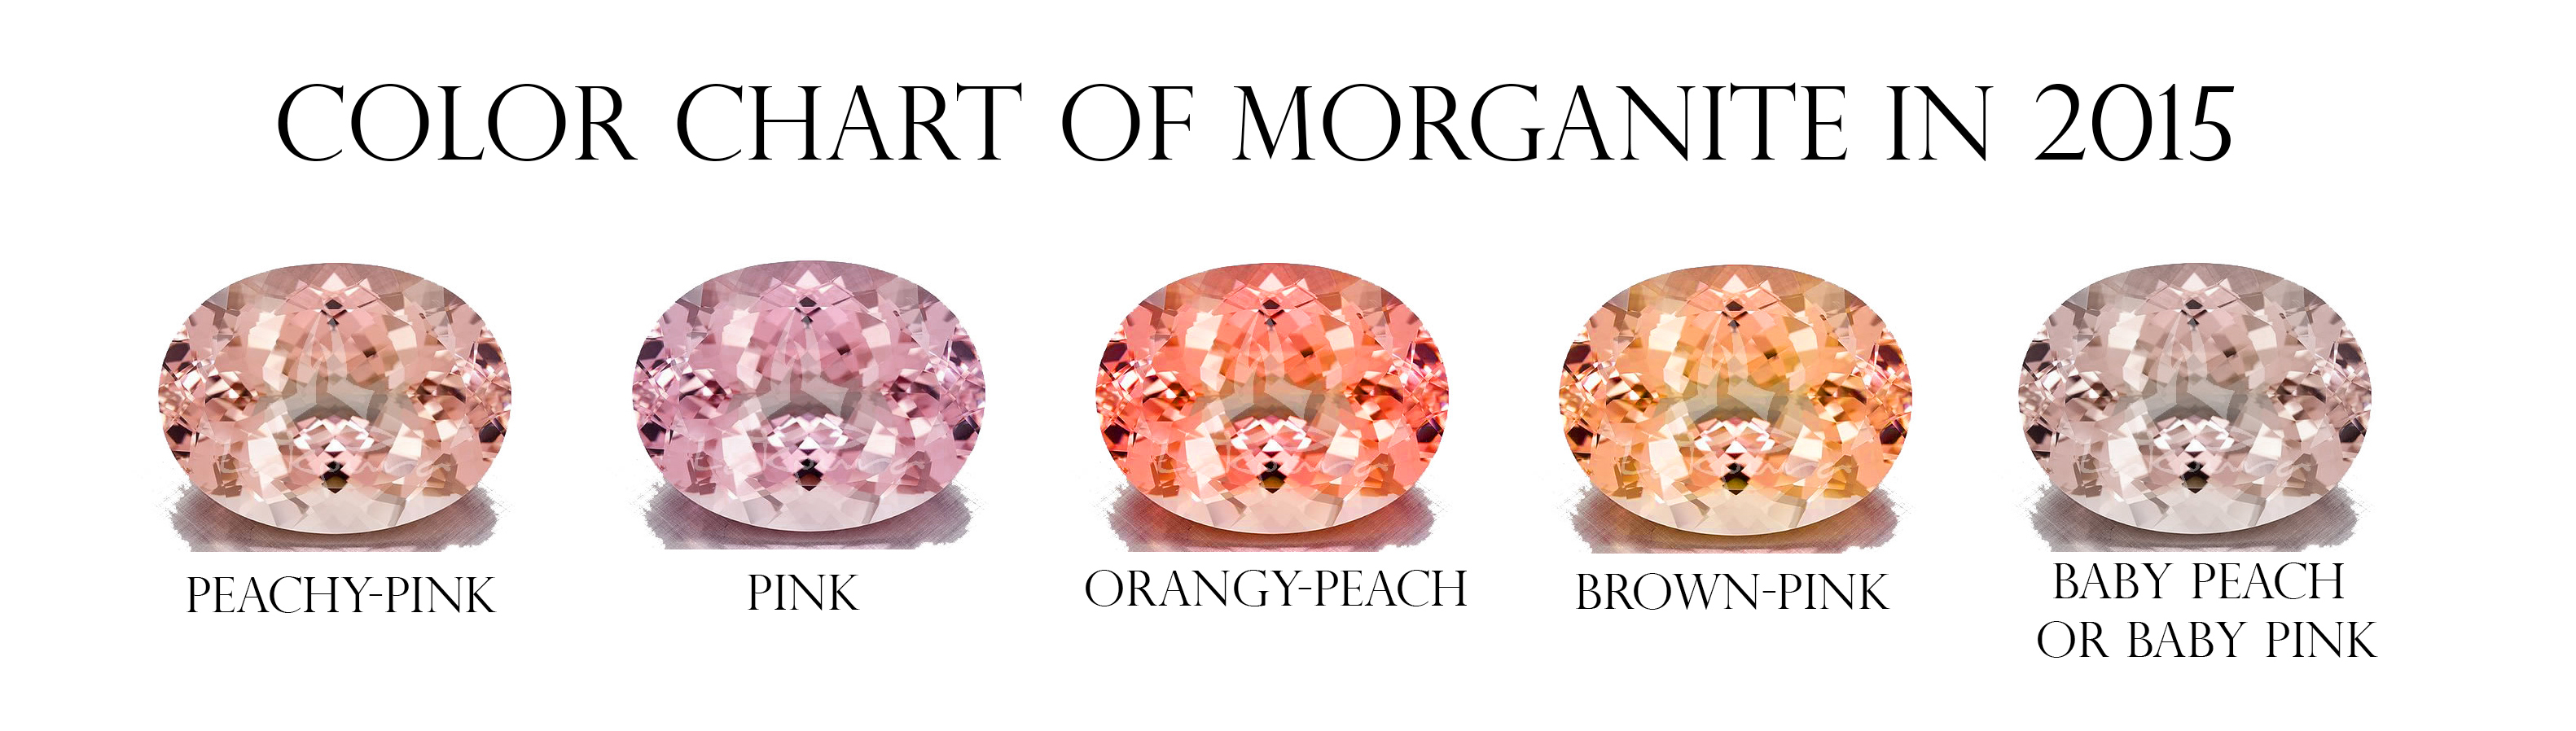 Morganite Color Chart